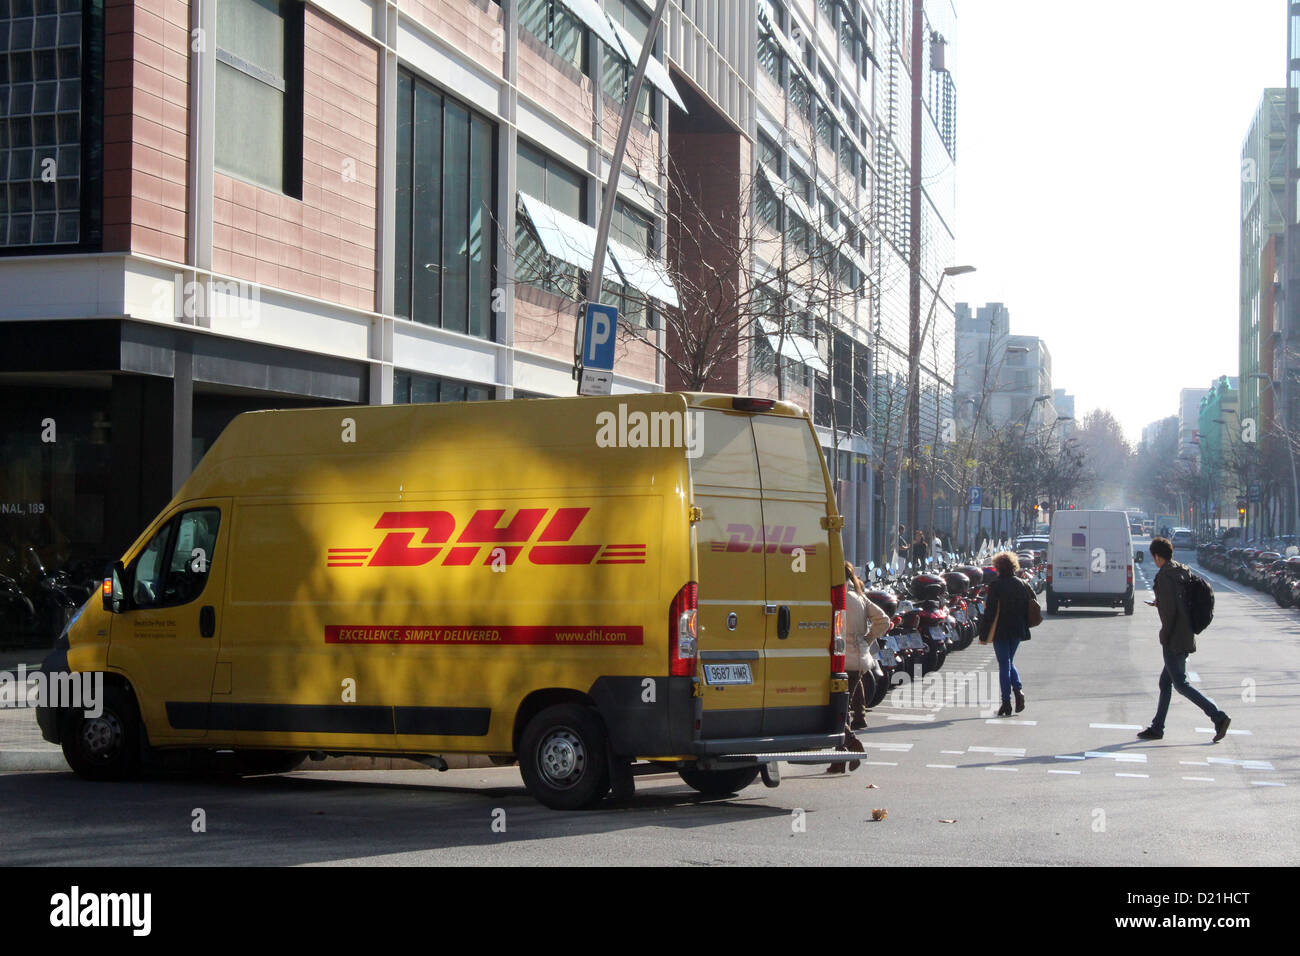 cf6c8e2db5cfca DHL delivery van parked in Barcelona Stock Photo  52896056 - Alamy